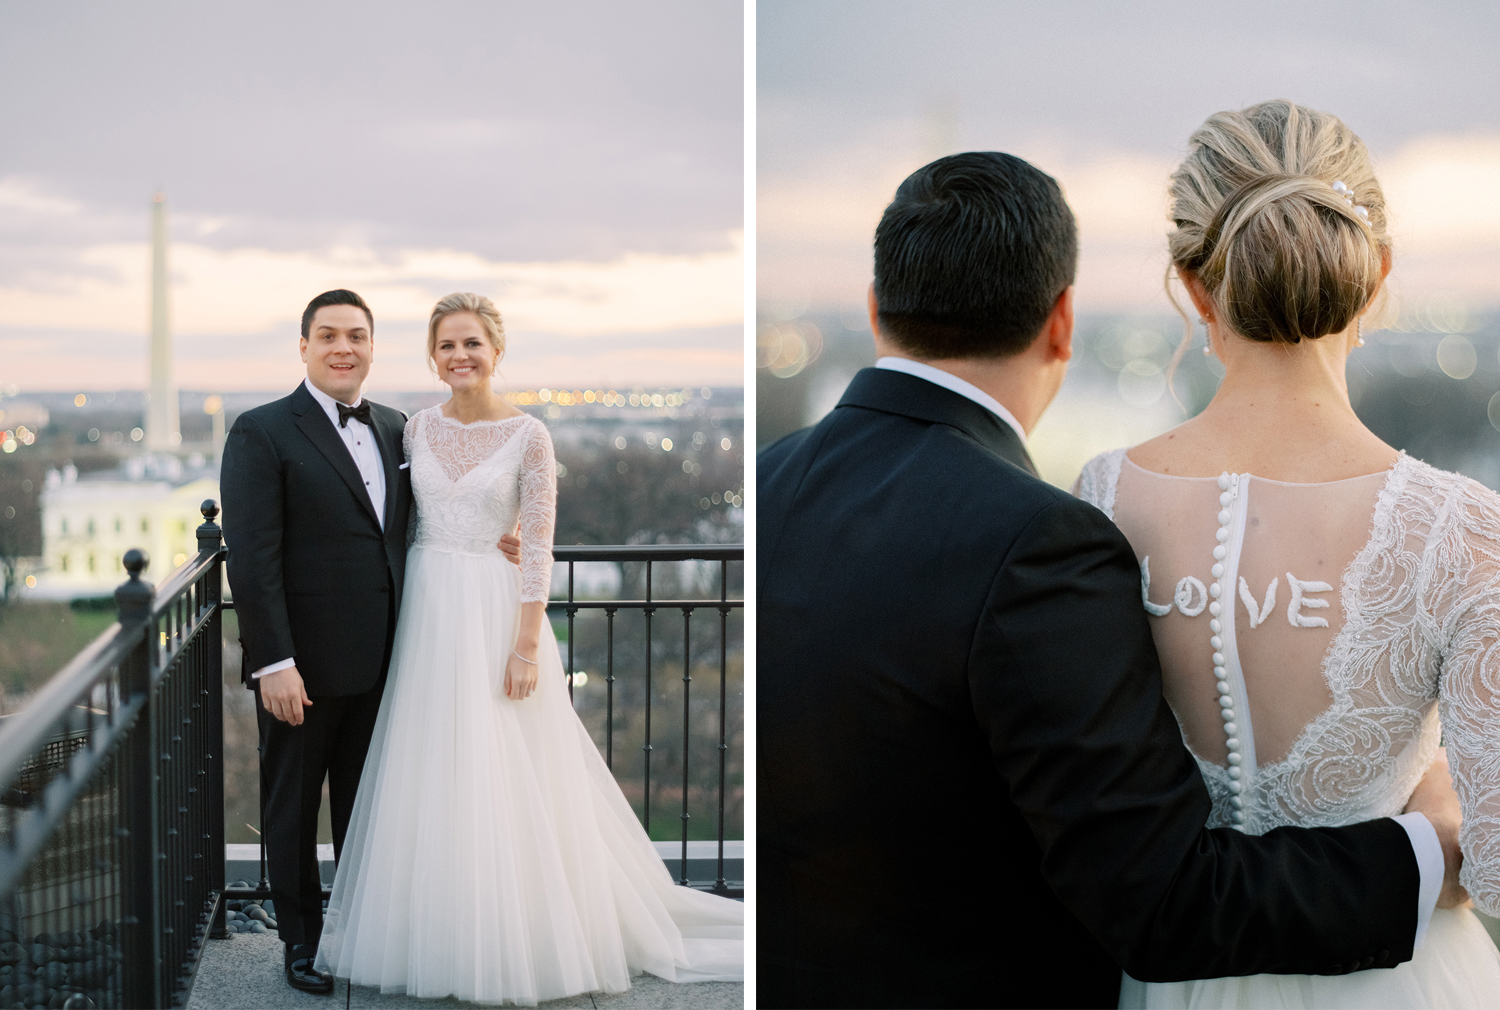 Bride and groom at The Hay Adams Hotel, enjoying the view